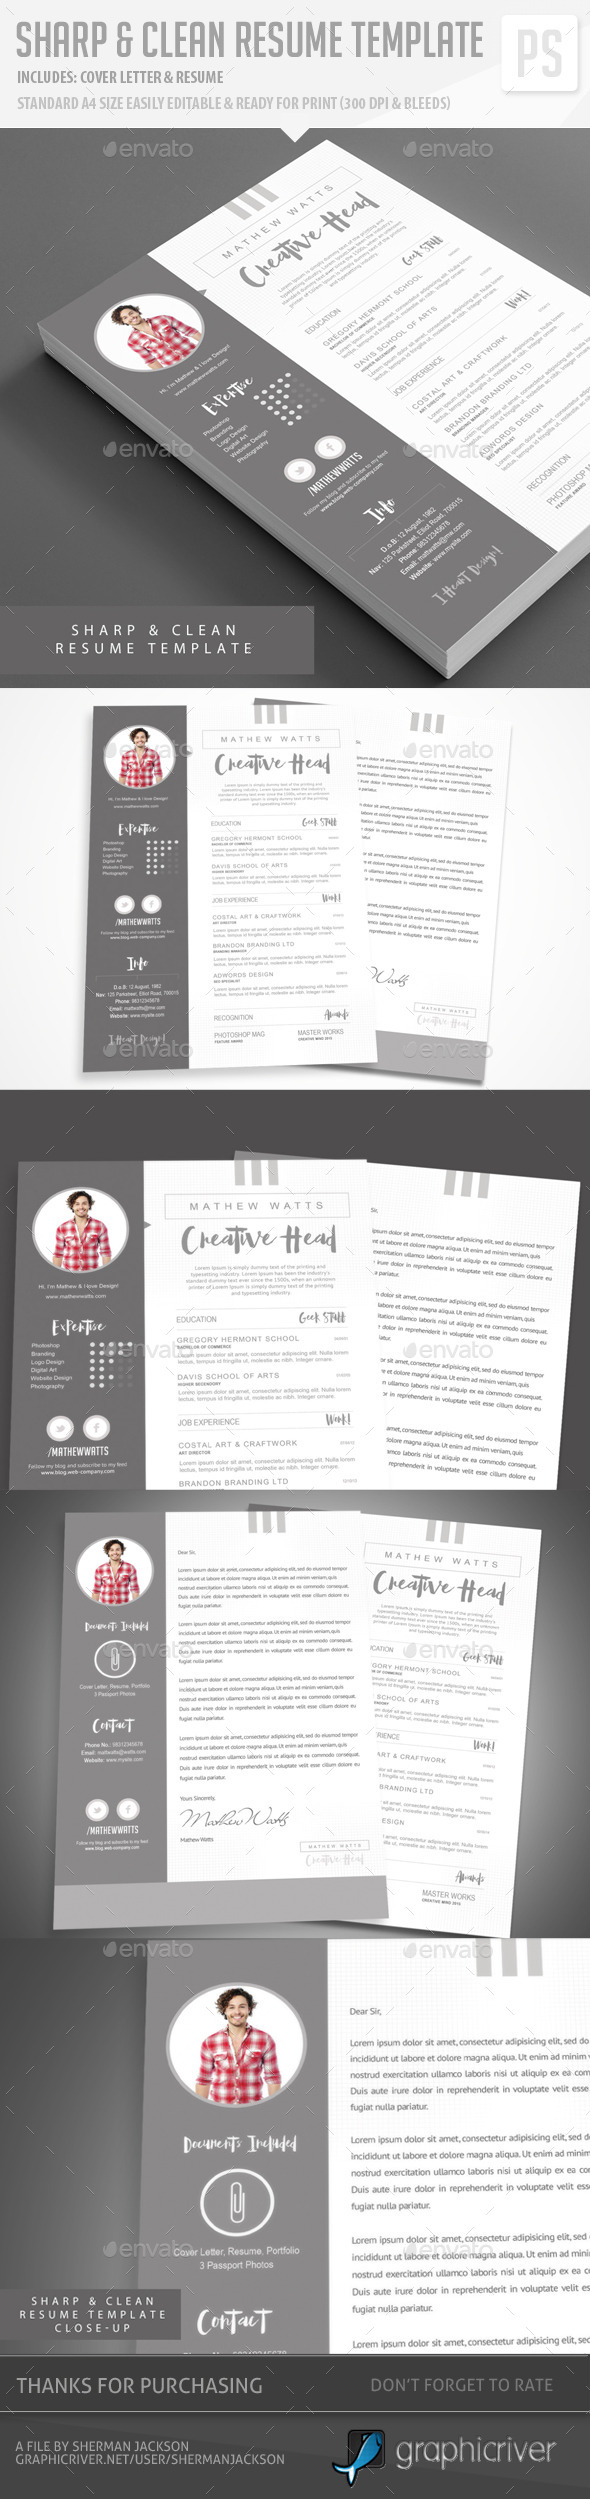 Sharp & Clean Resume for Photoshop - Resumes Stationery